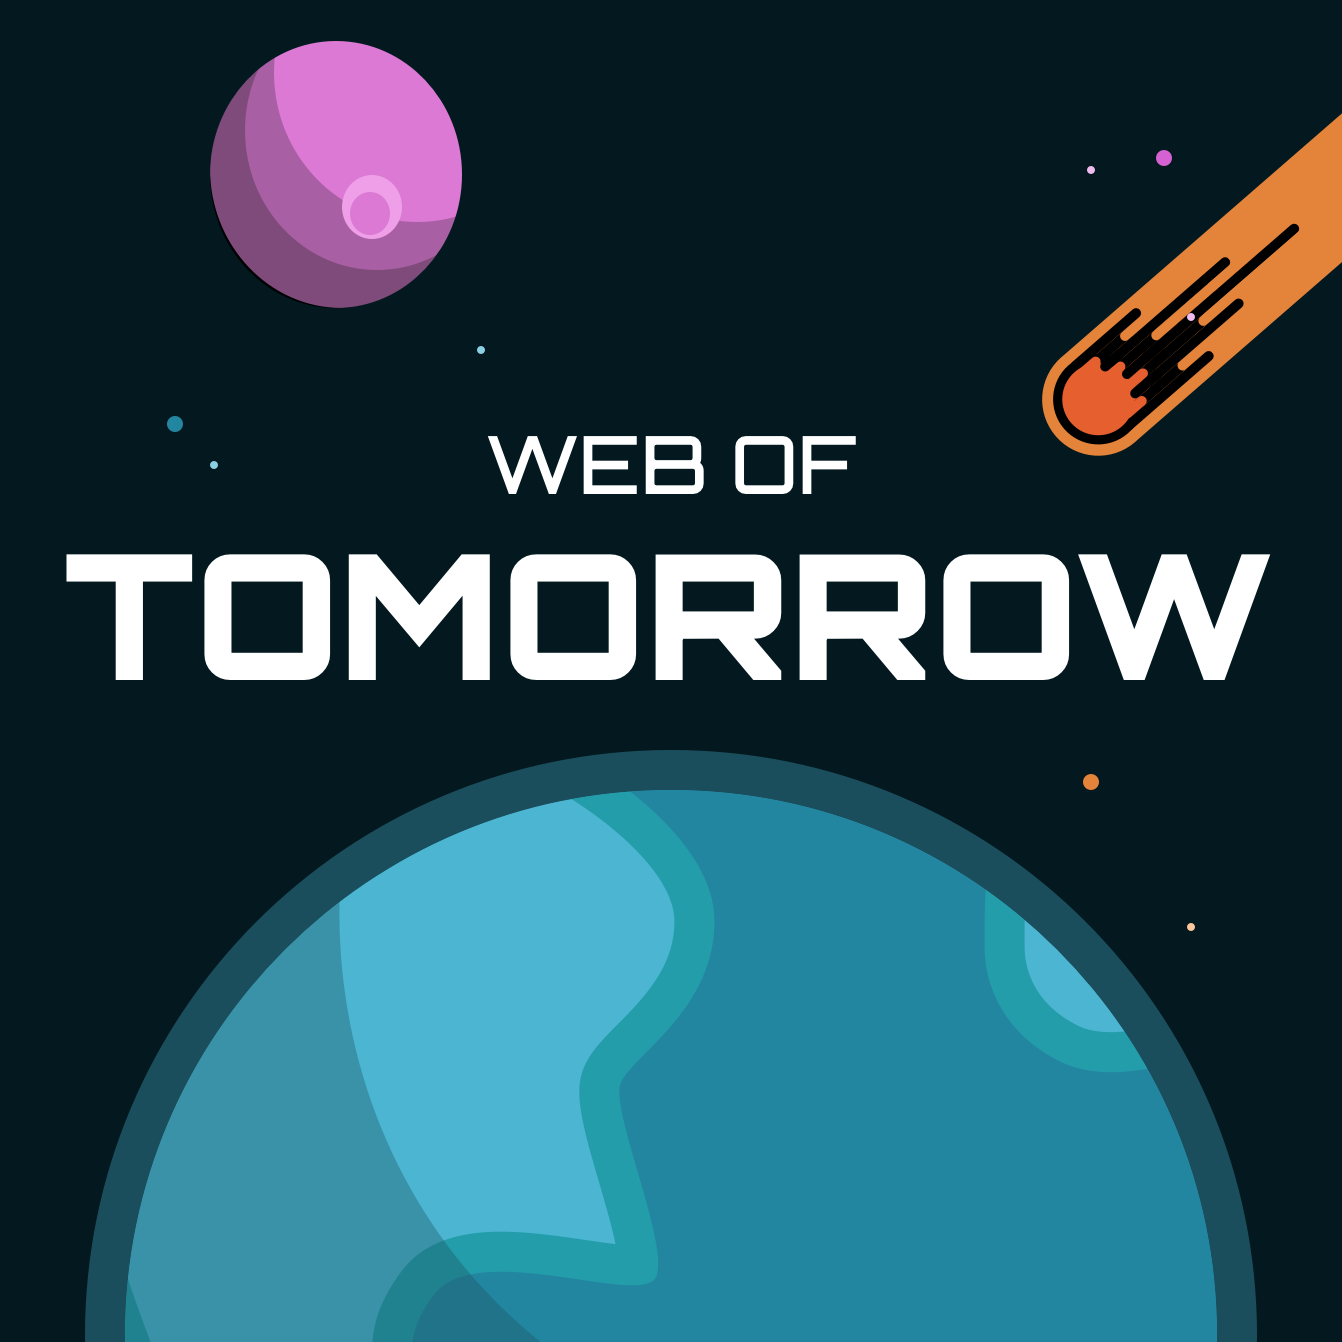 Web of Tomorrow